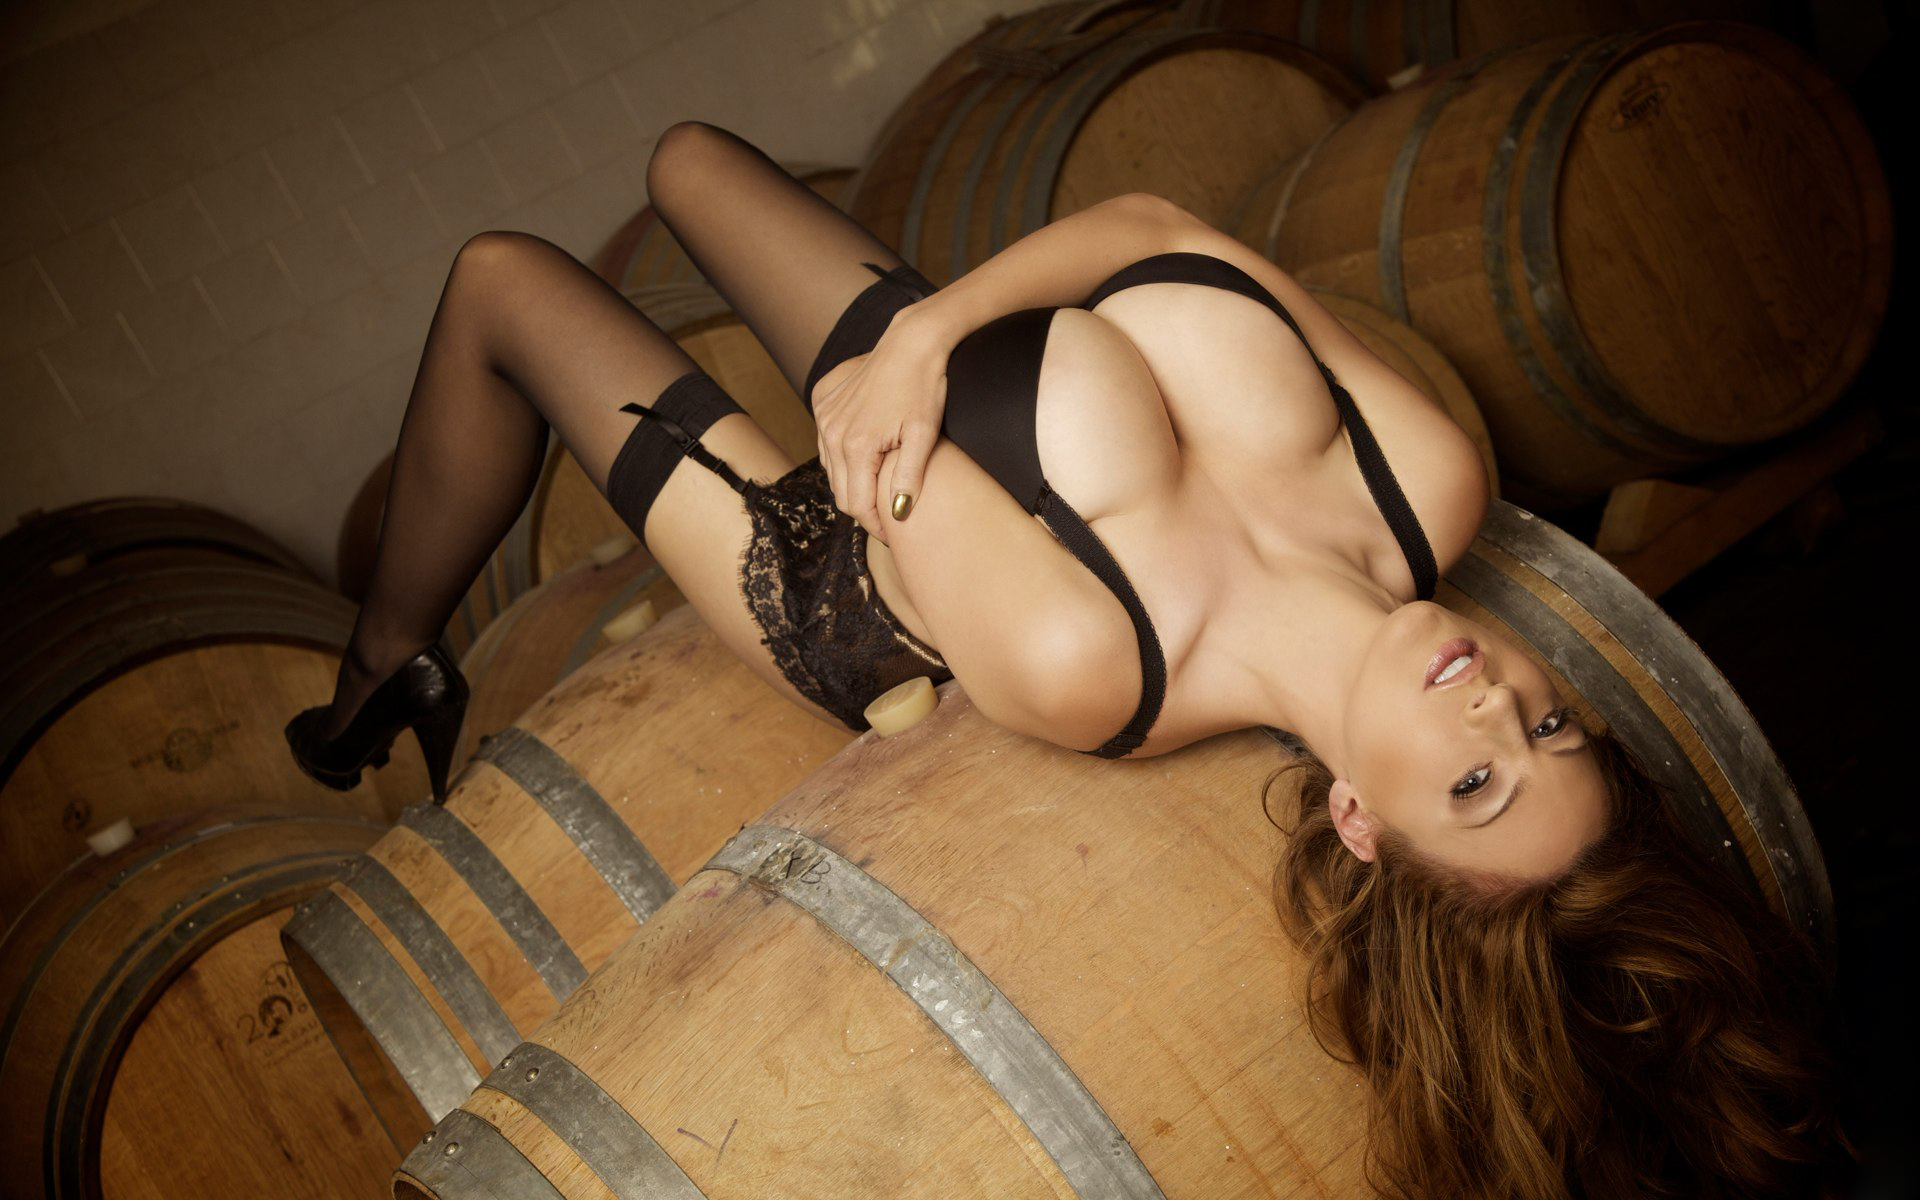 Jordan Carver Over a barrel in stockings